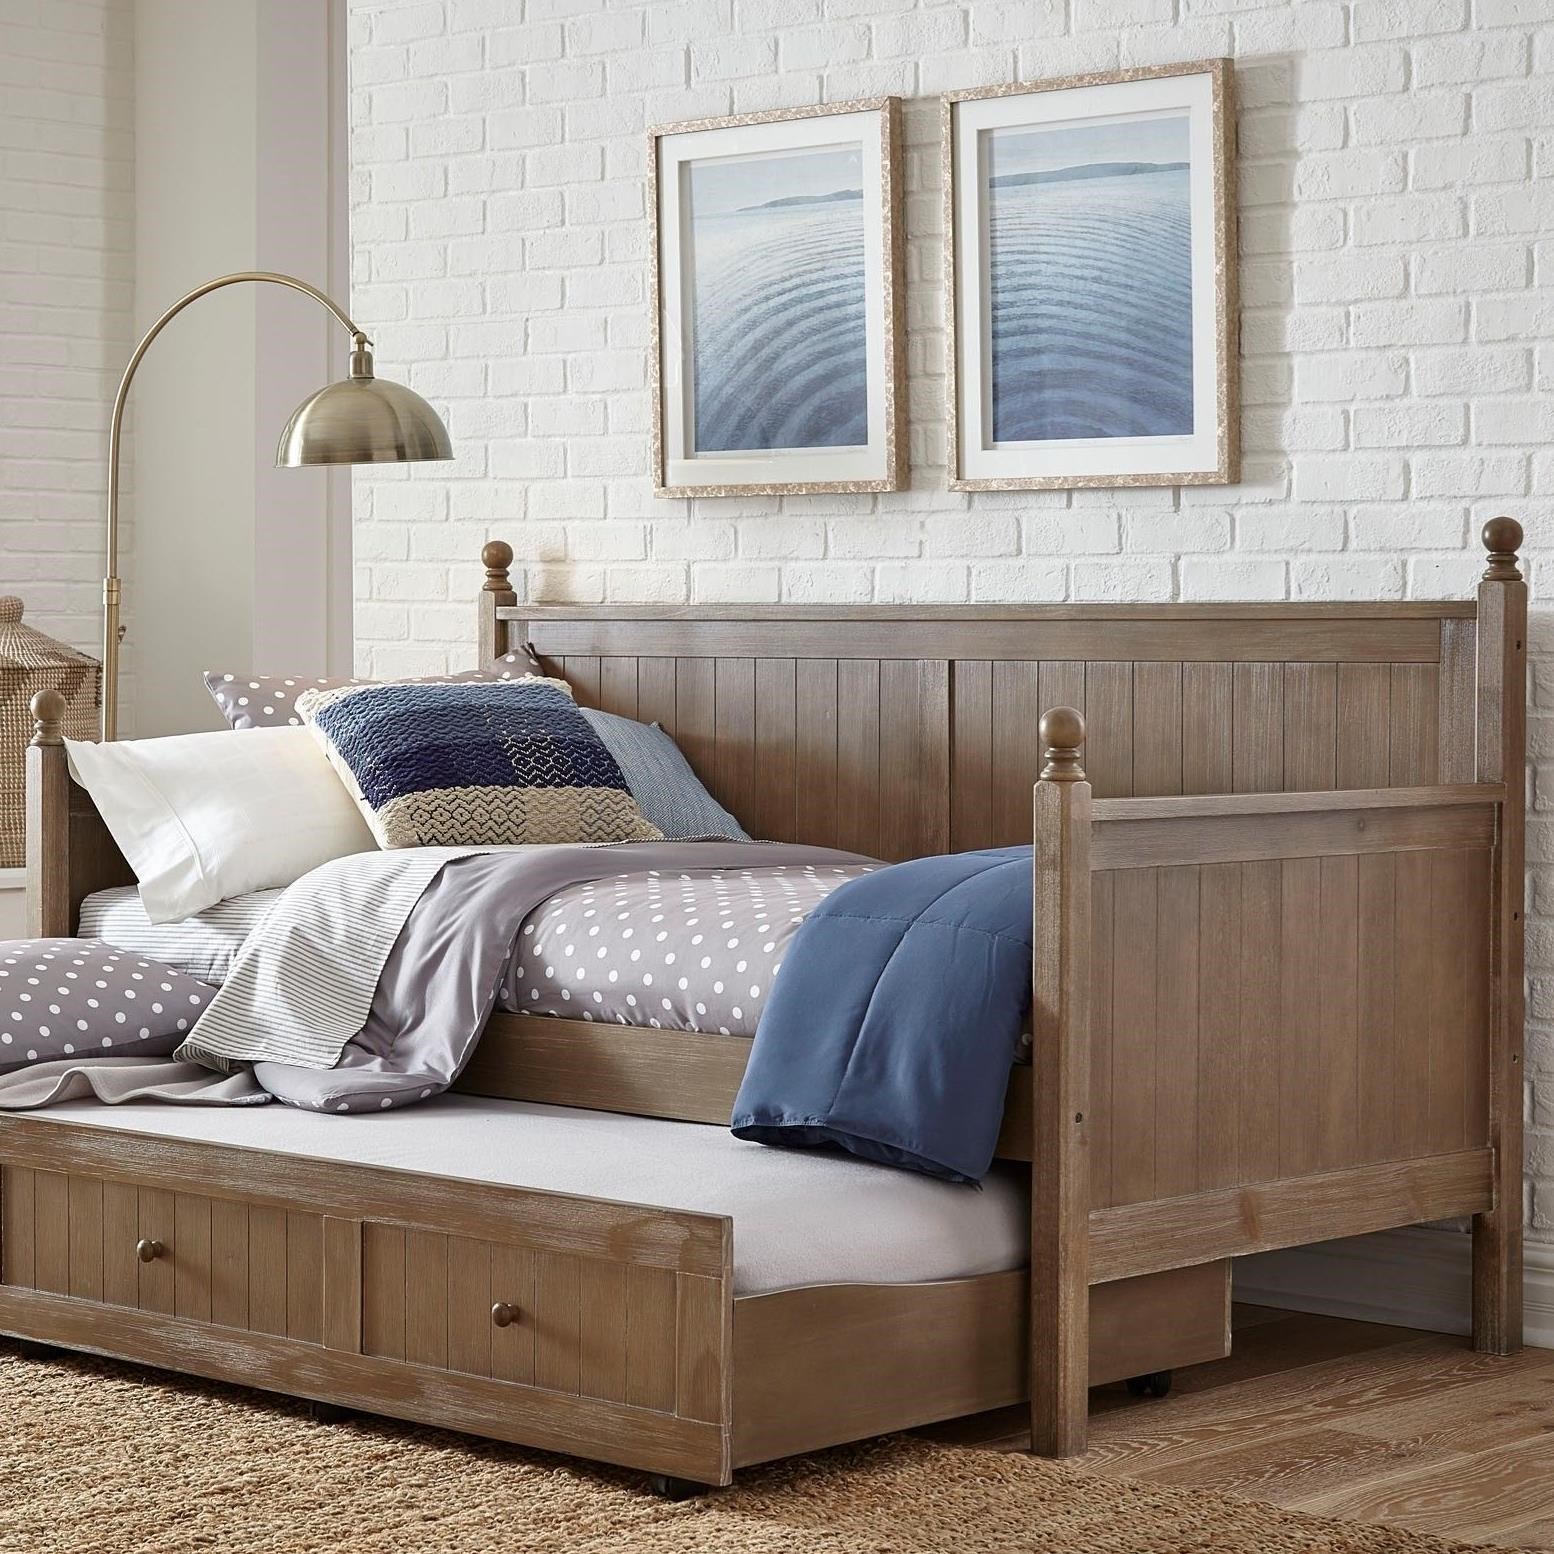 Fashion Bed Group Daybeds Carston Slumberworld Daybeds